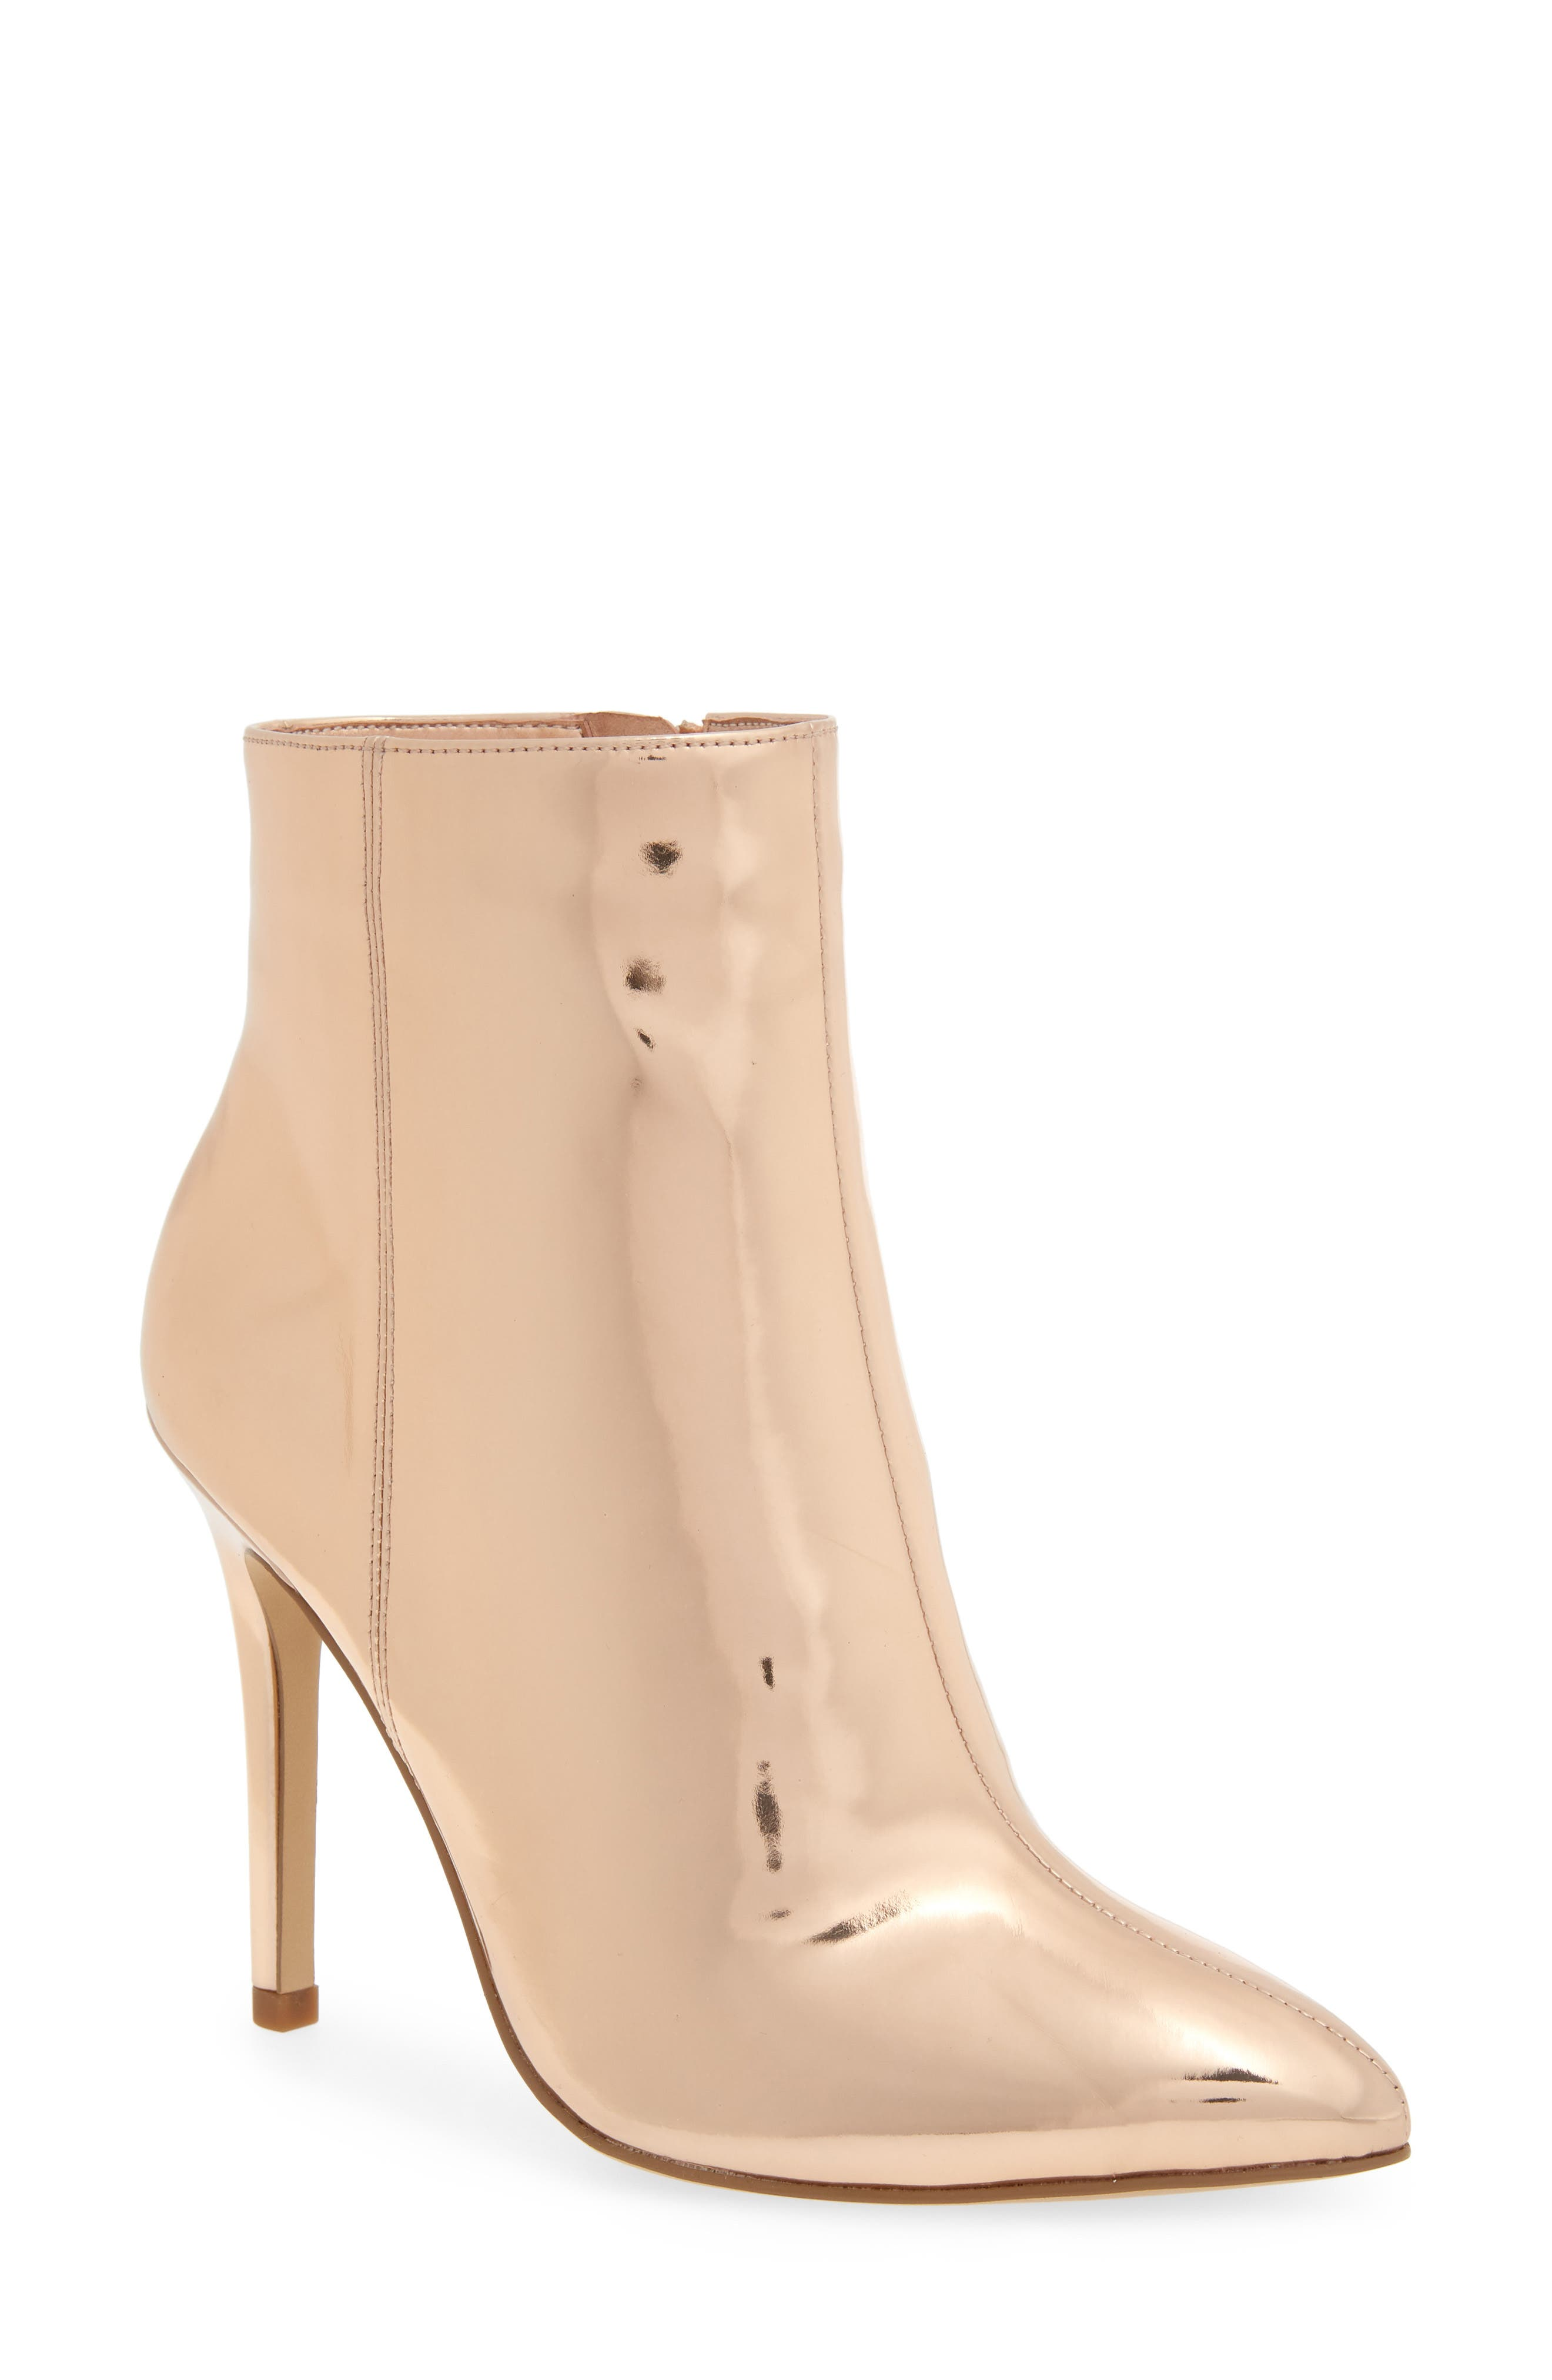 CHARLES BY CHARLES DAVID Delicious Bootie, Main, color, ROSE GOLD LEATHER